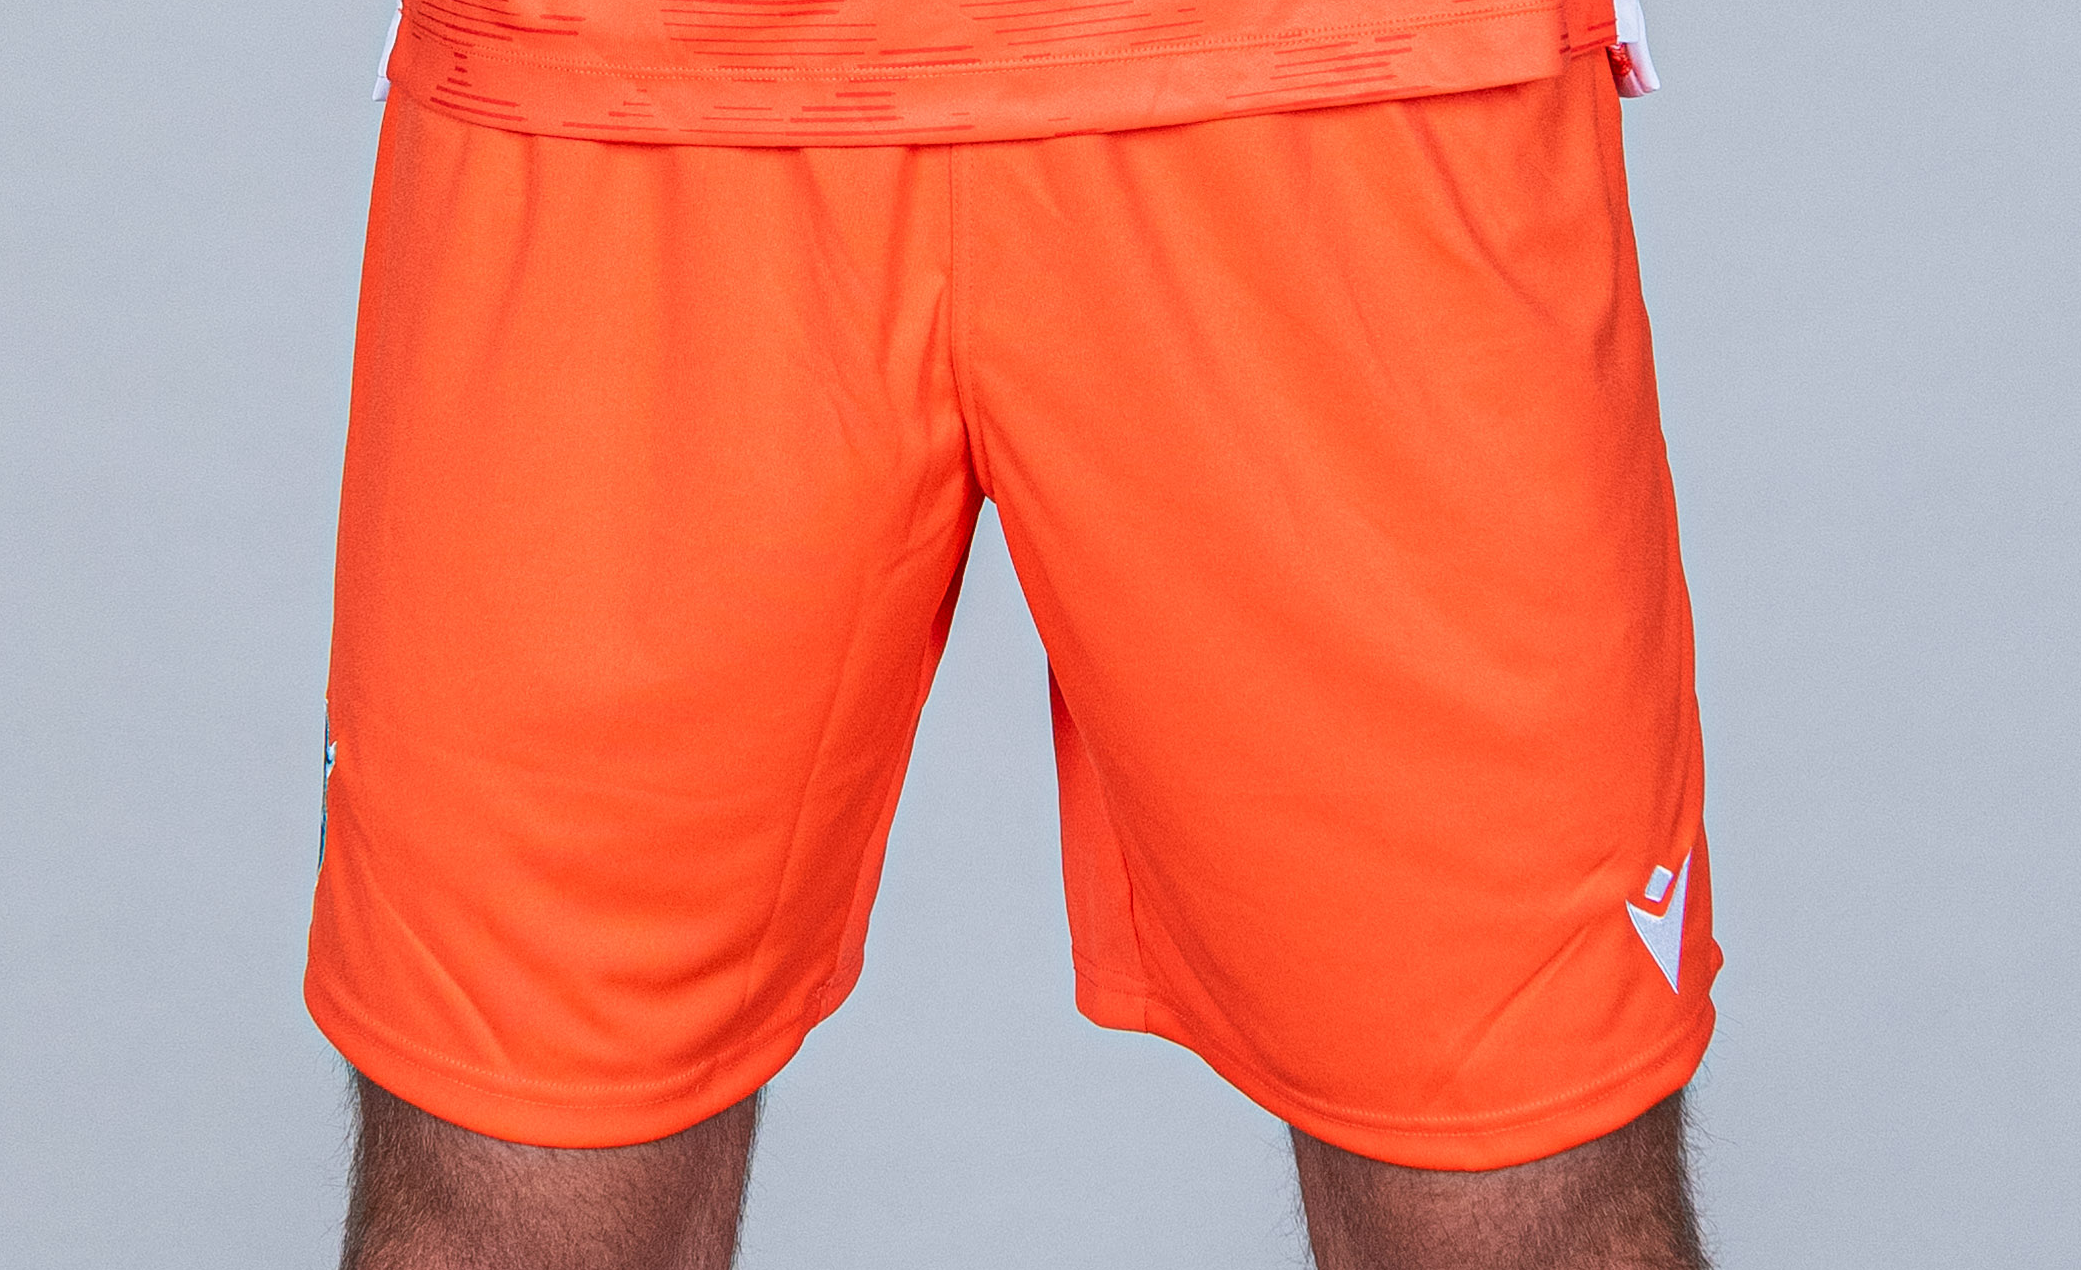 Bristol Rovers Orange Goalkeeper Shorts 2020/21 Adult